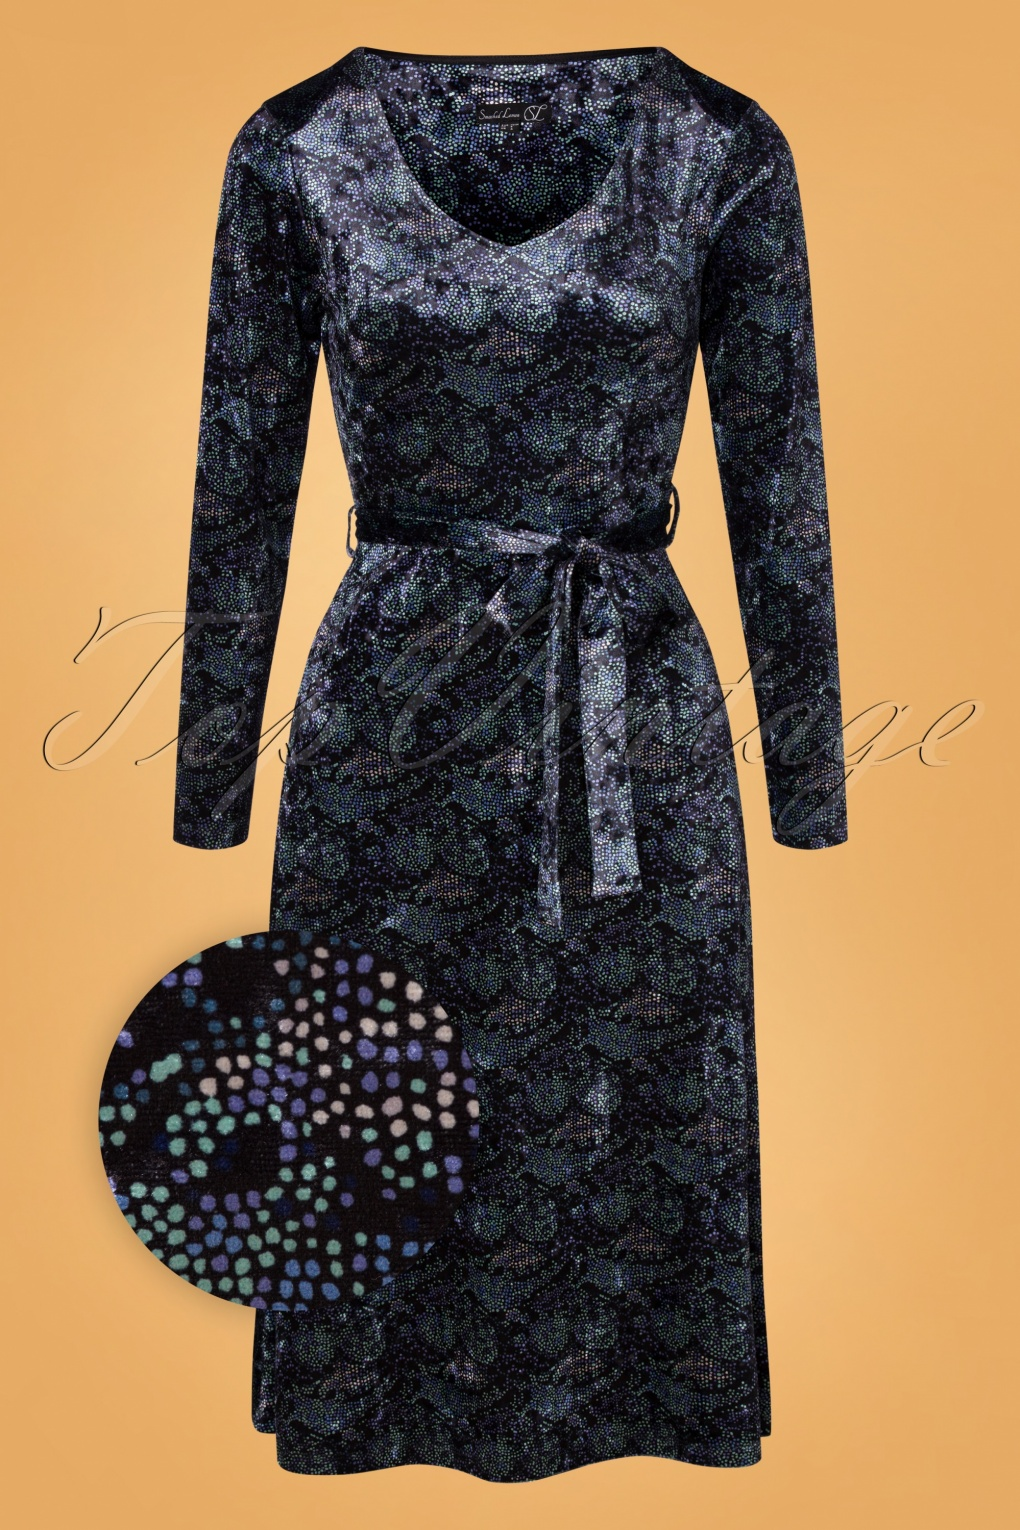 1960s Cocktail, Party, Prom, Evening Dresses 60s Cobie Velvet Dress in Black and Blue £60.57 AT vintagedancer.com